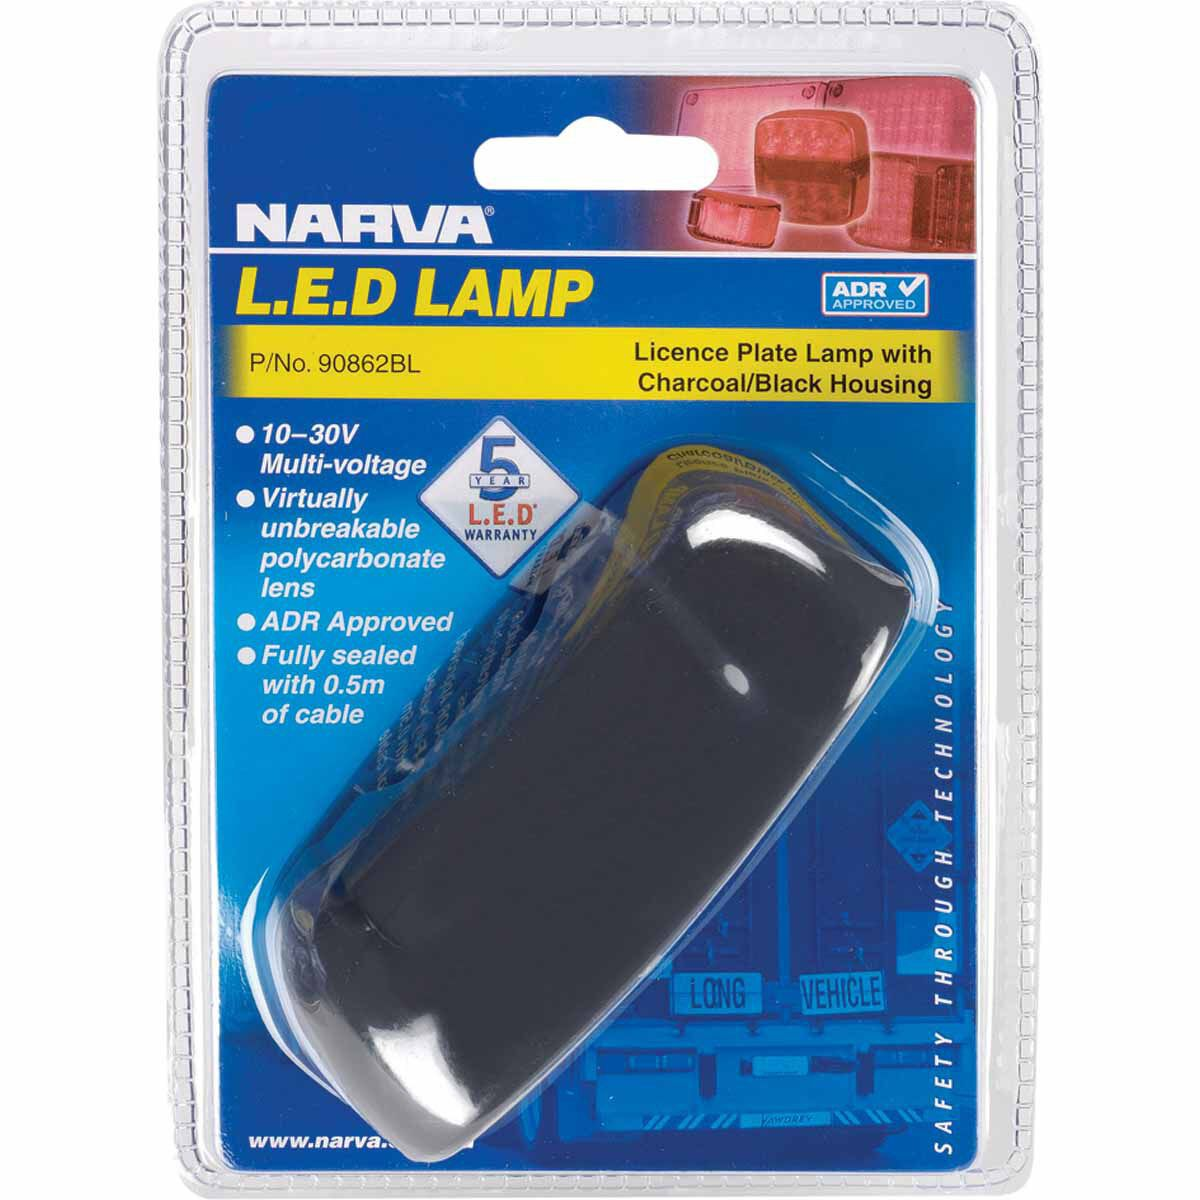 Narva Number Plate Light Wiring - Wiring Diagram Bookmark on